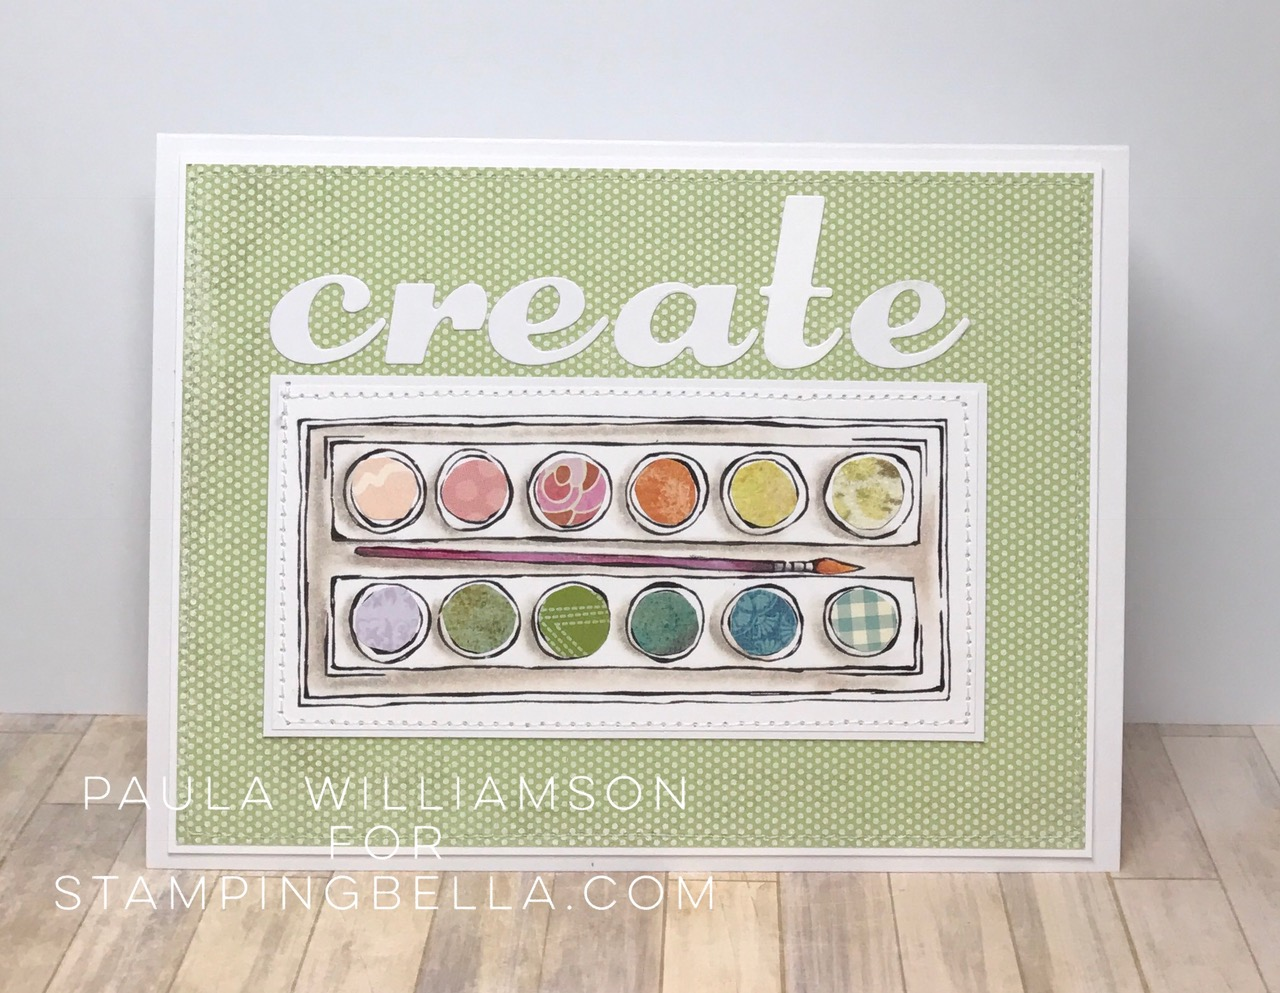 Danielle's SWATCH KIT- CIRCLE PALETTE with BRUSH- CARD BY PAULA WILLIAMSON